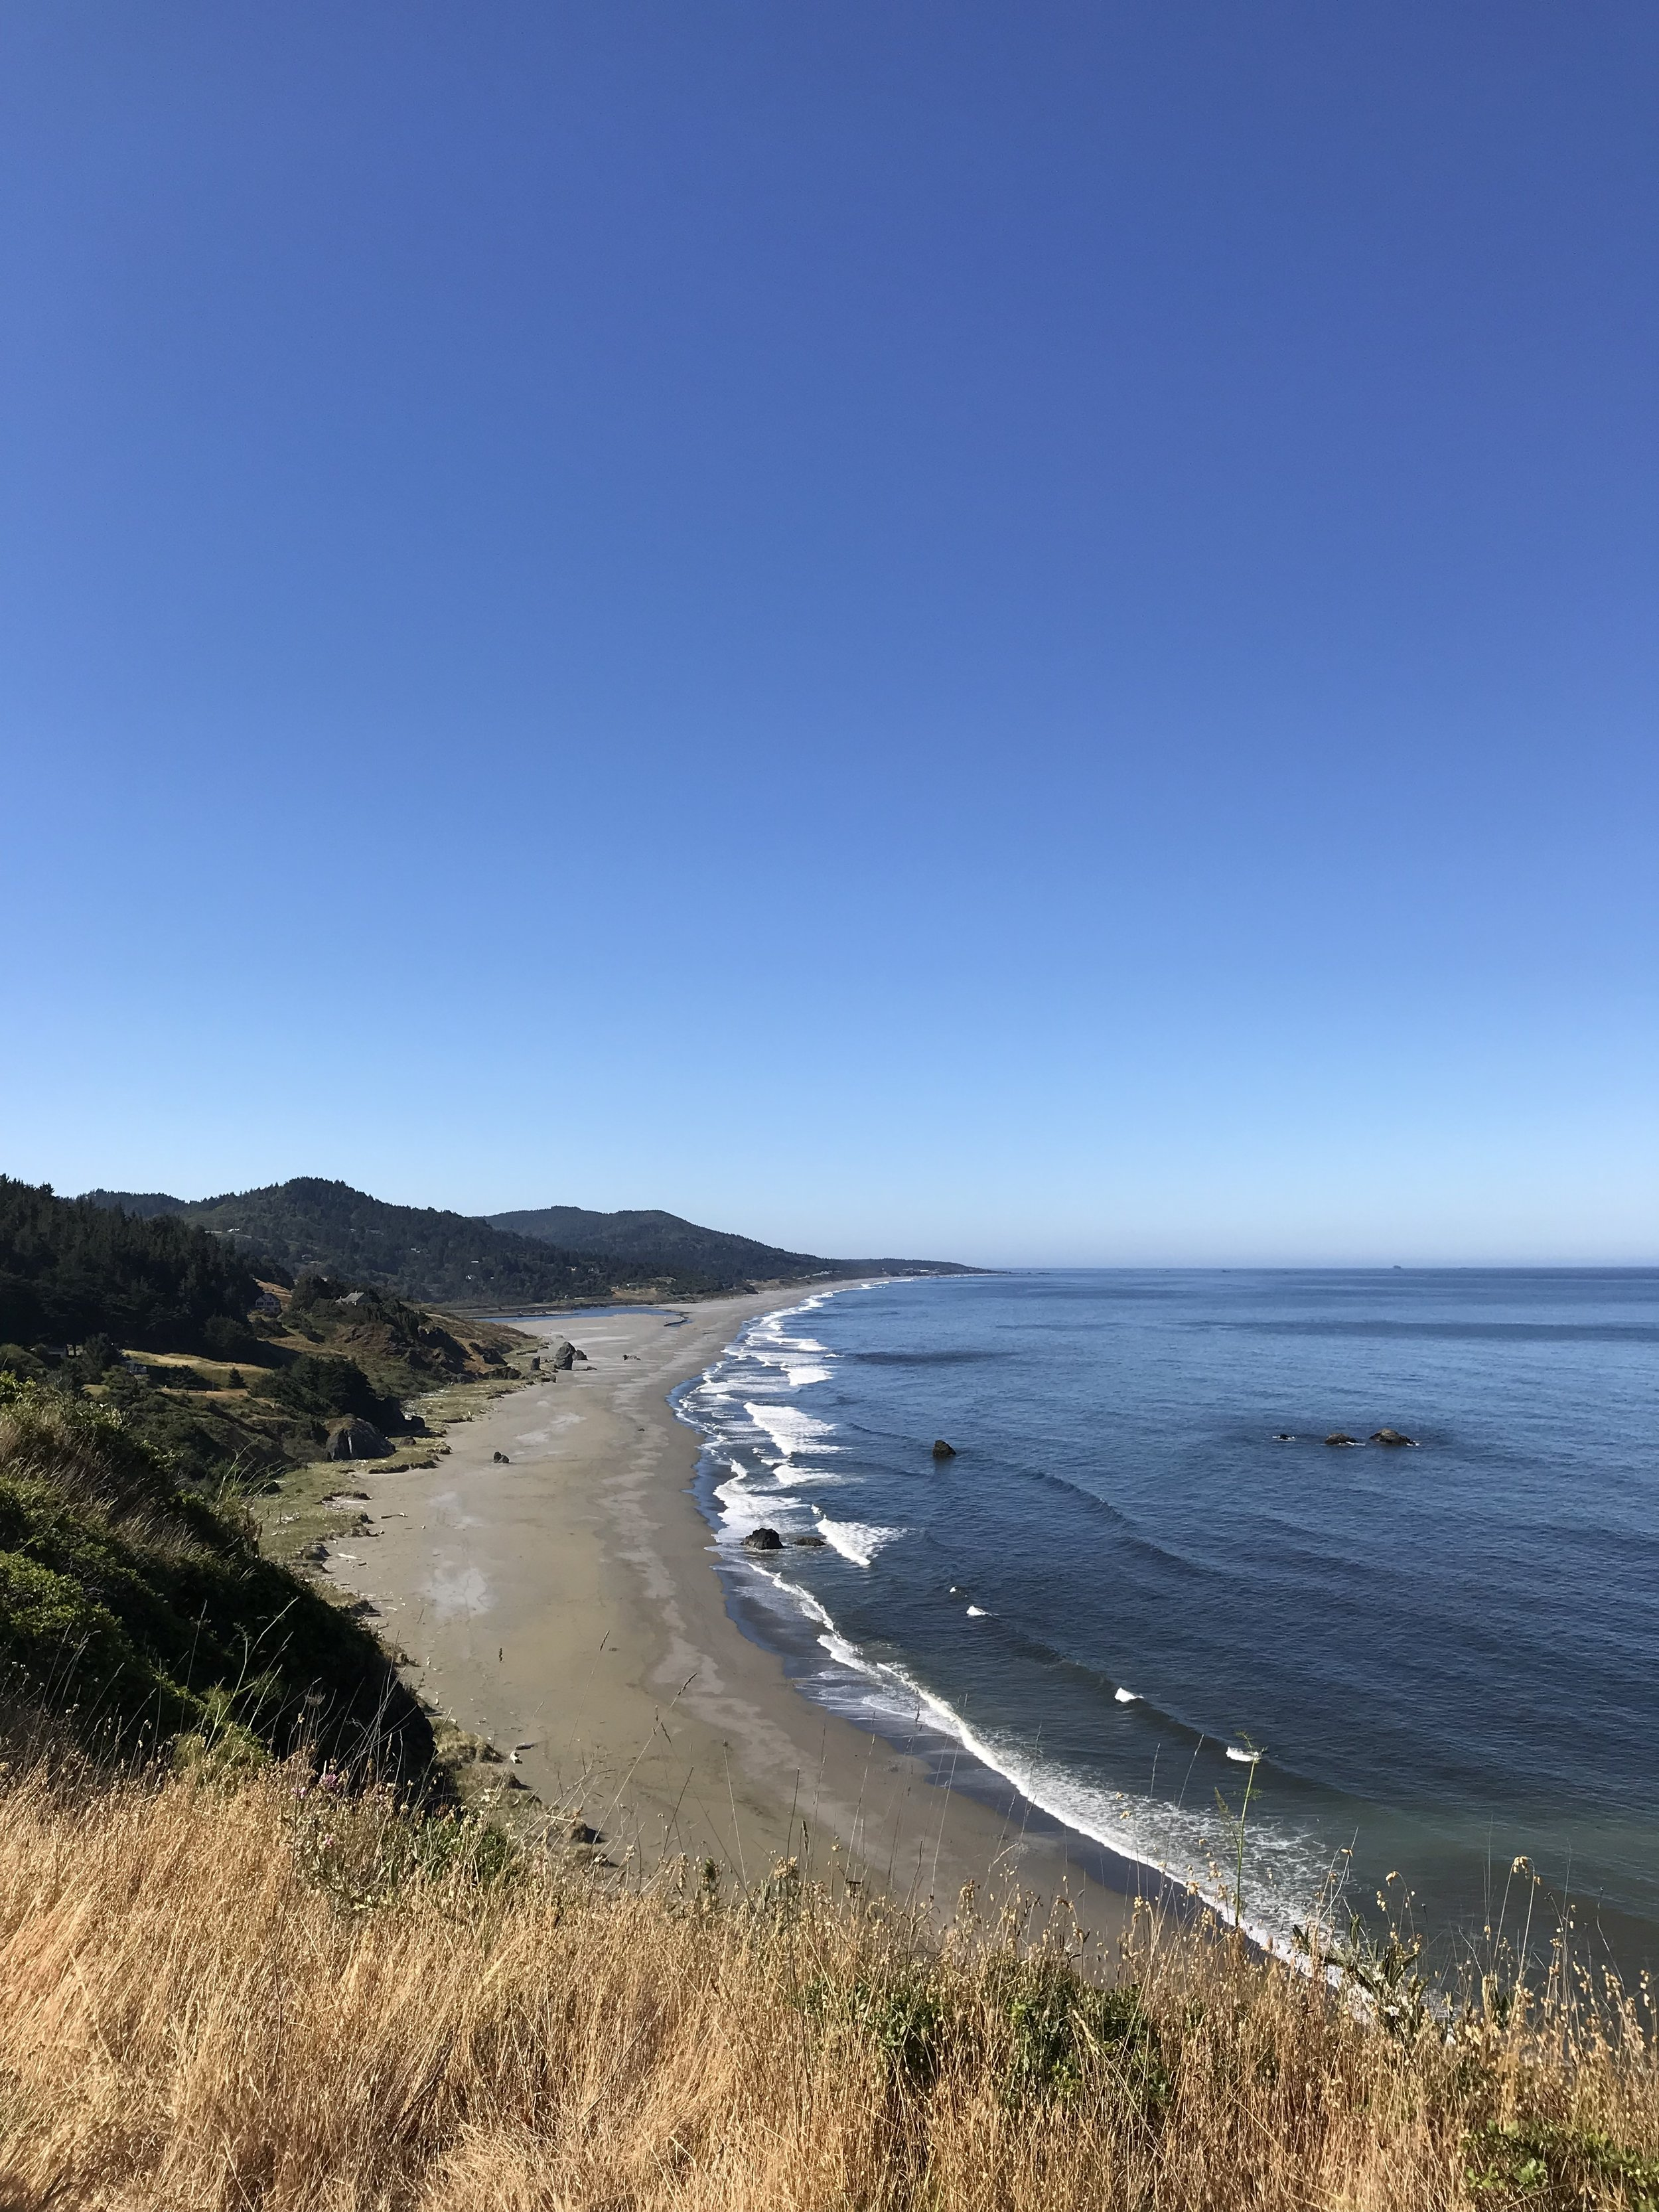 The coastline near Gold Beach. The pictures don't do it justice - the views were incredible today.